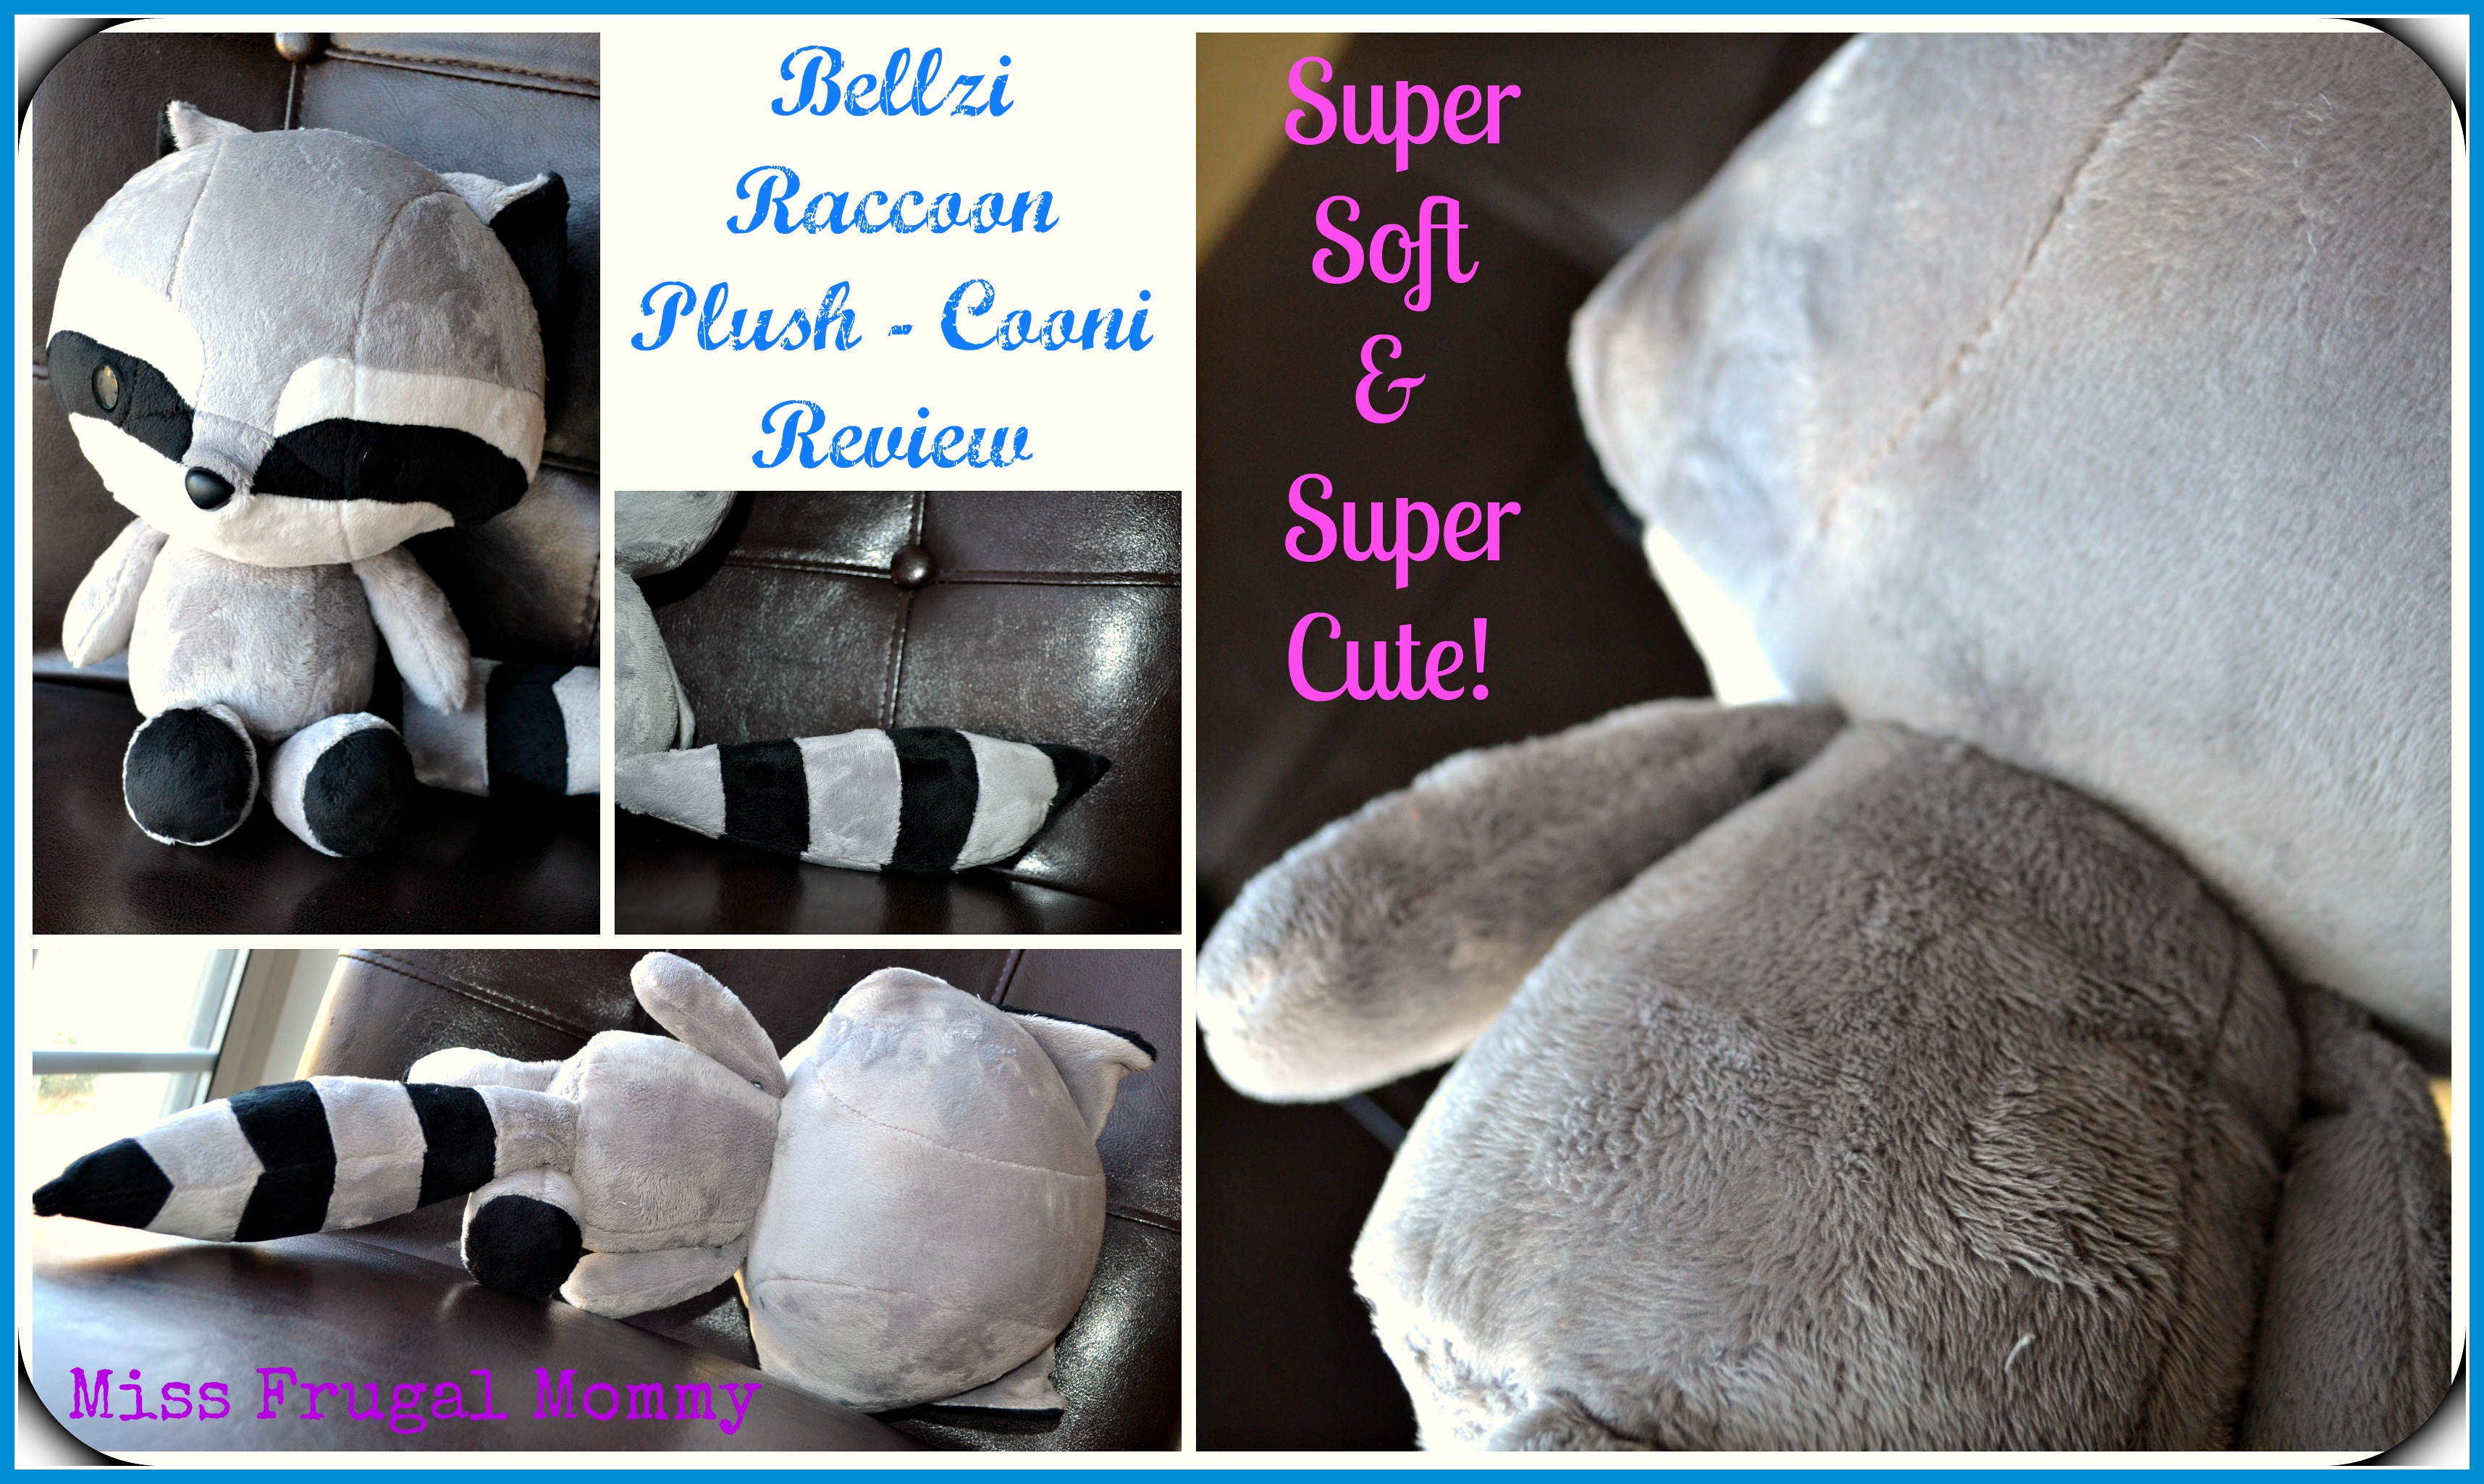 Bellzi Raccoon Plush - Cooni Review (Getting Ready For Baby Gift Guide)